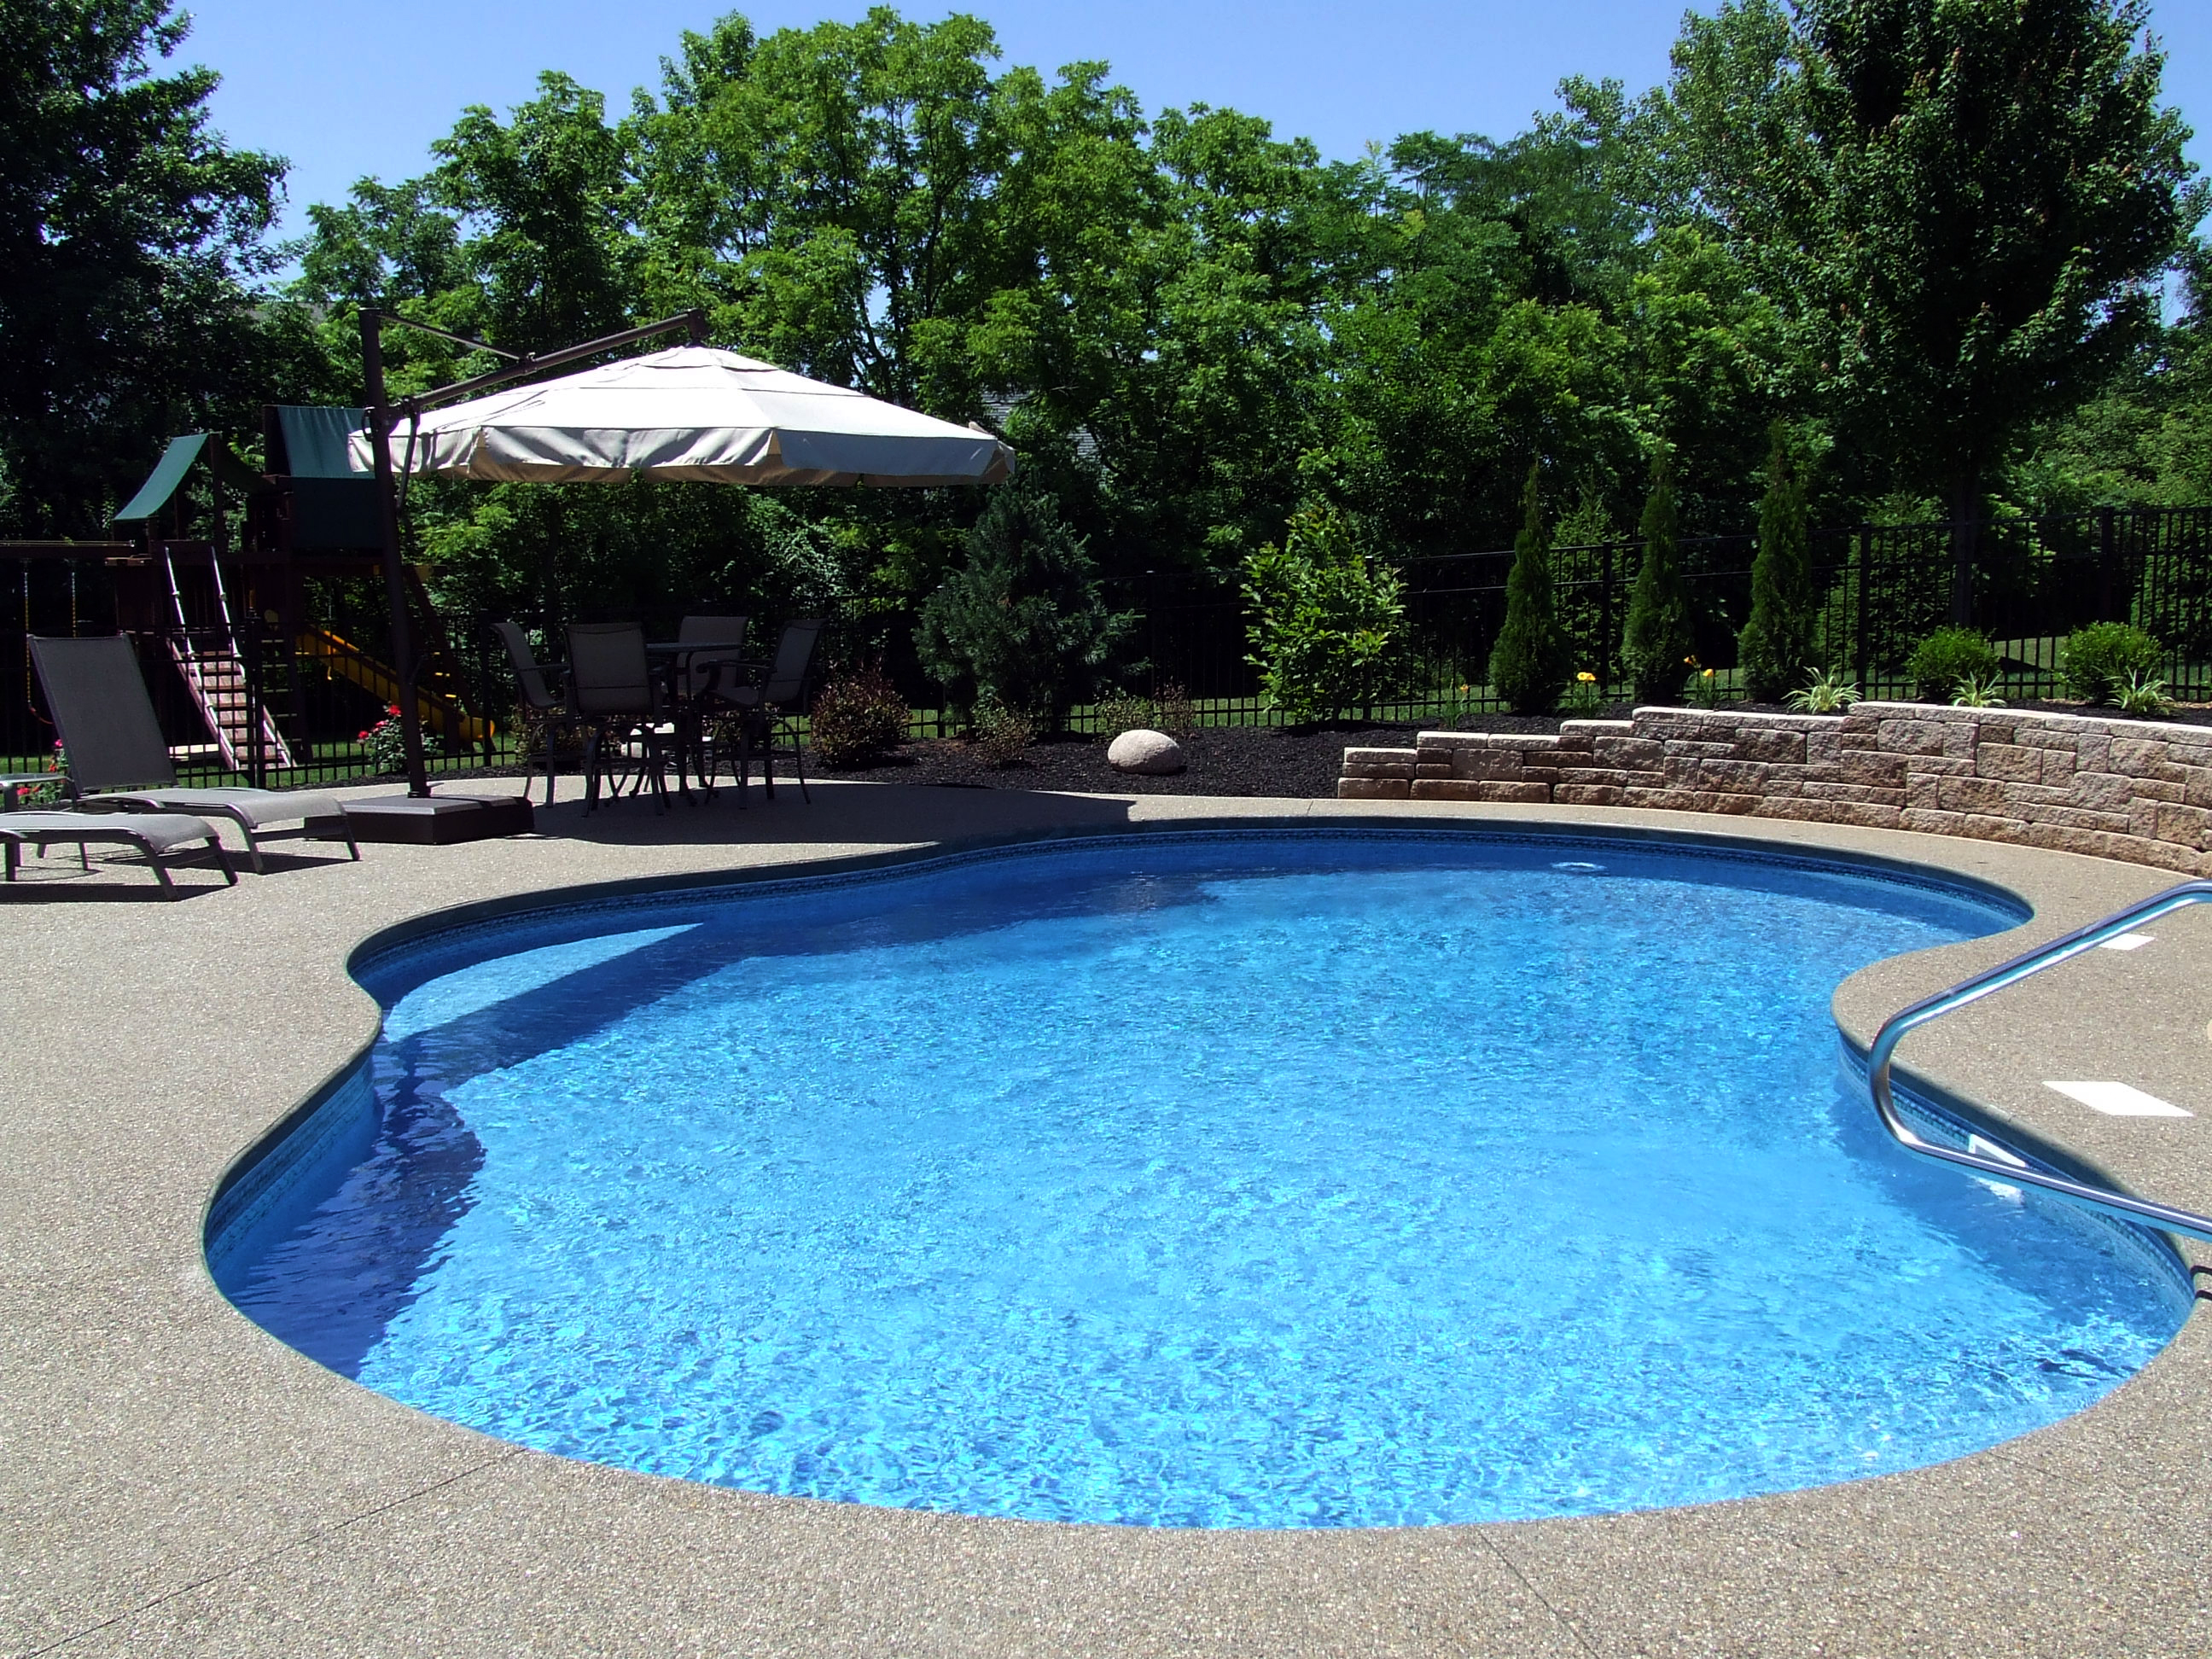 SunSpot Inground Pool Design - 106